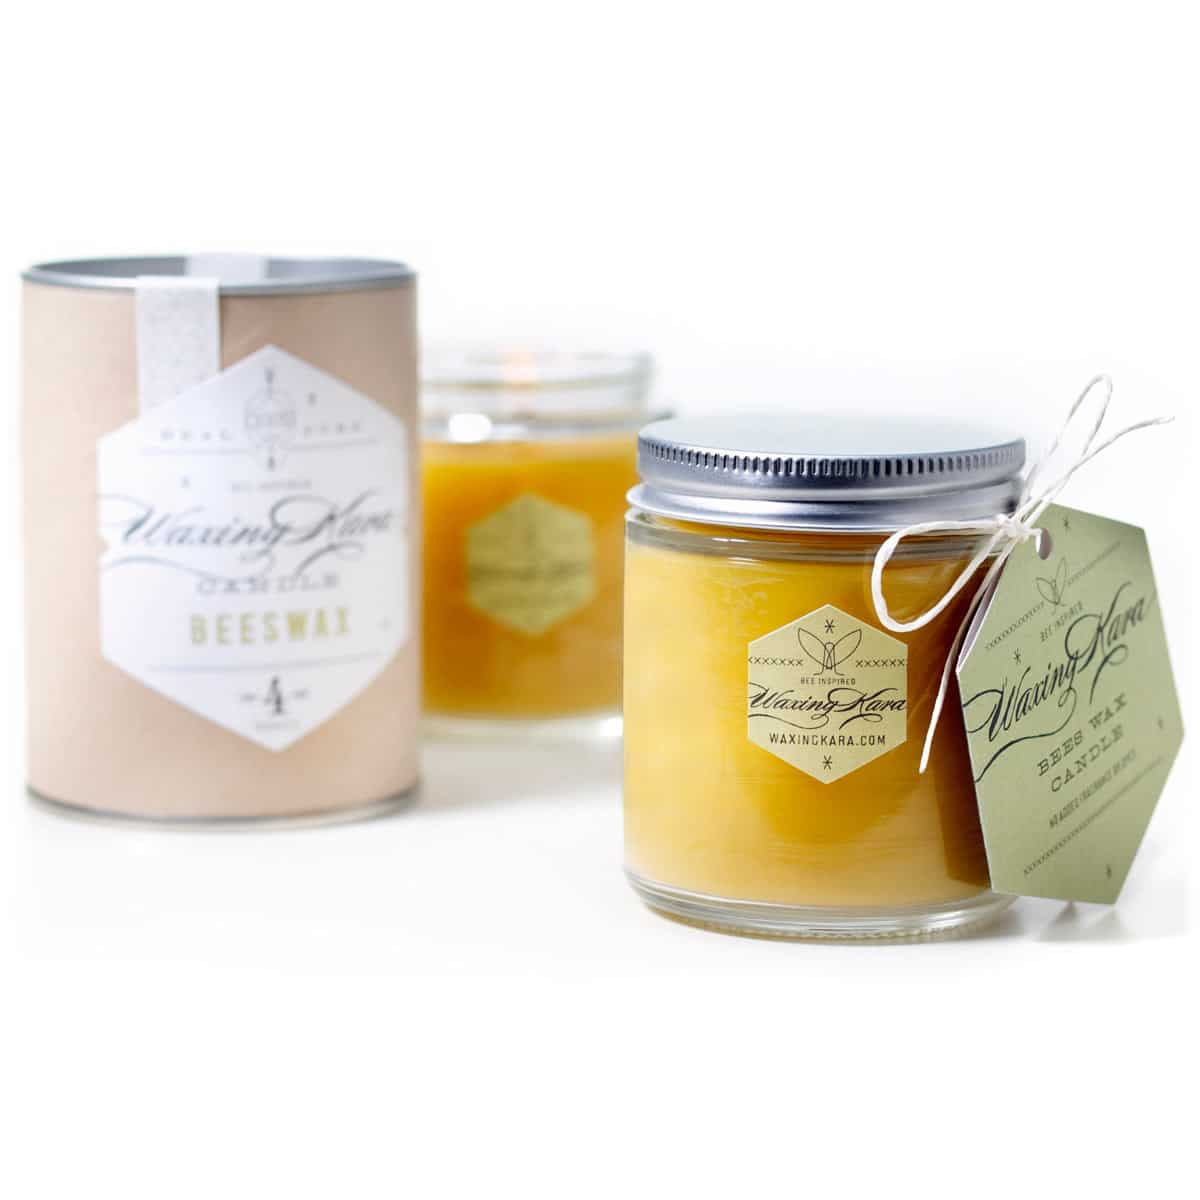 Mind your own beeswax'… beeswax candles, that is